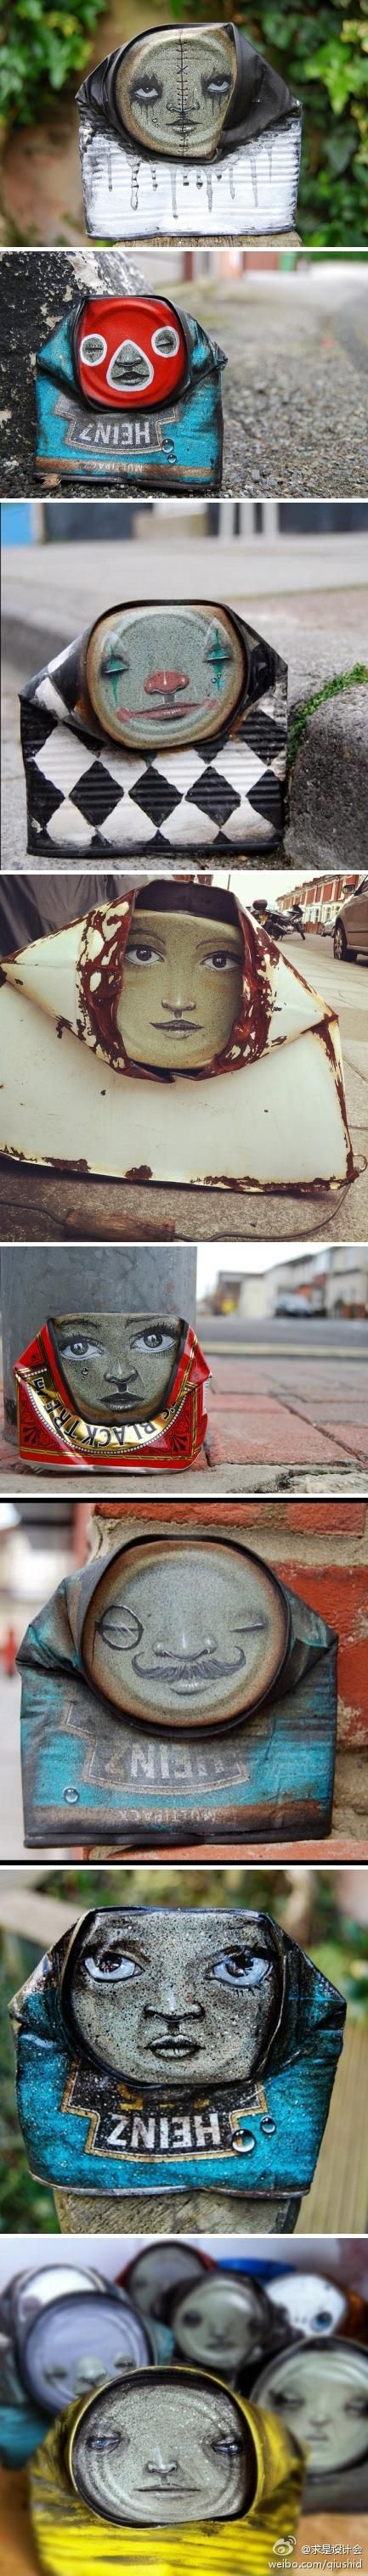 My Dog Sighs: Can Men -Street artist My Dog Sighs creates painted faces on found crushed cans, which he then leaves on the streets in random places for passers-by to take home. It is both a street art installation project and an altruistic gesture dedicated to the cause of free art for everyone.